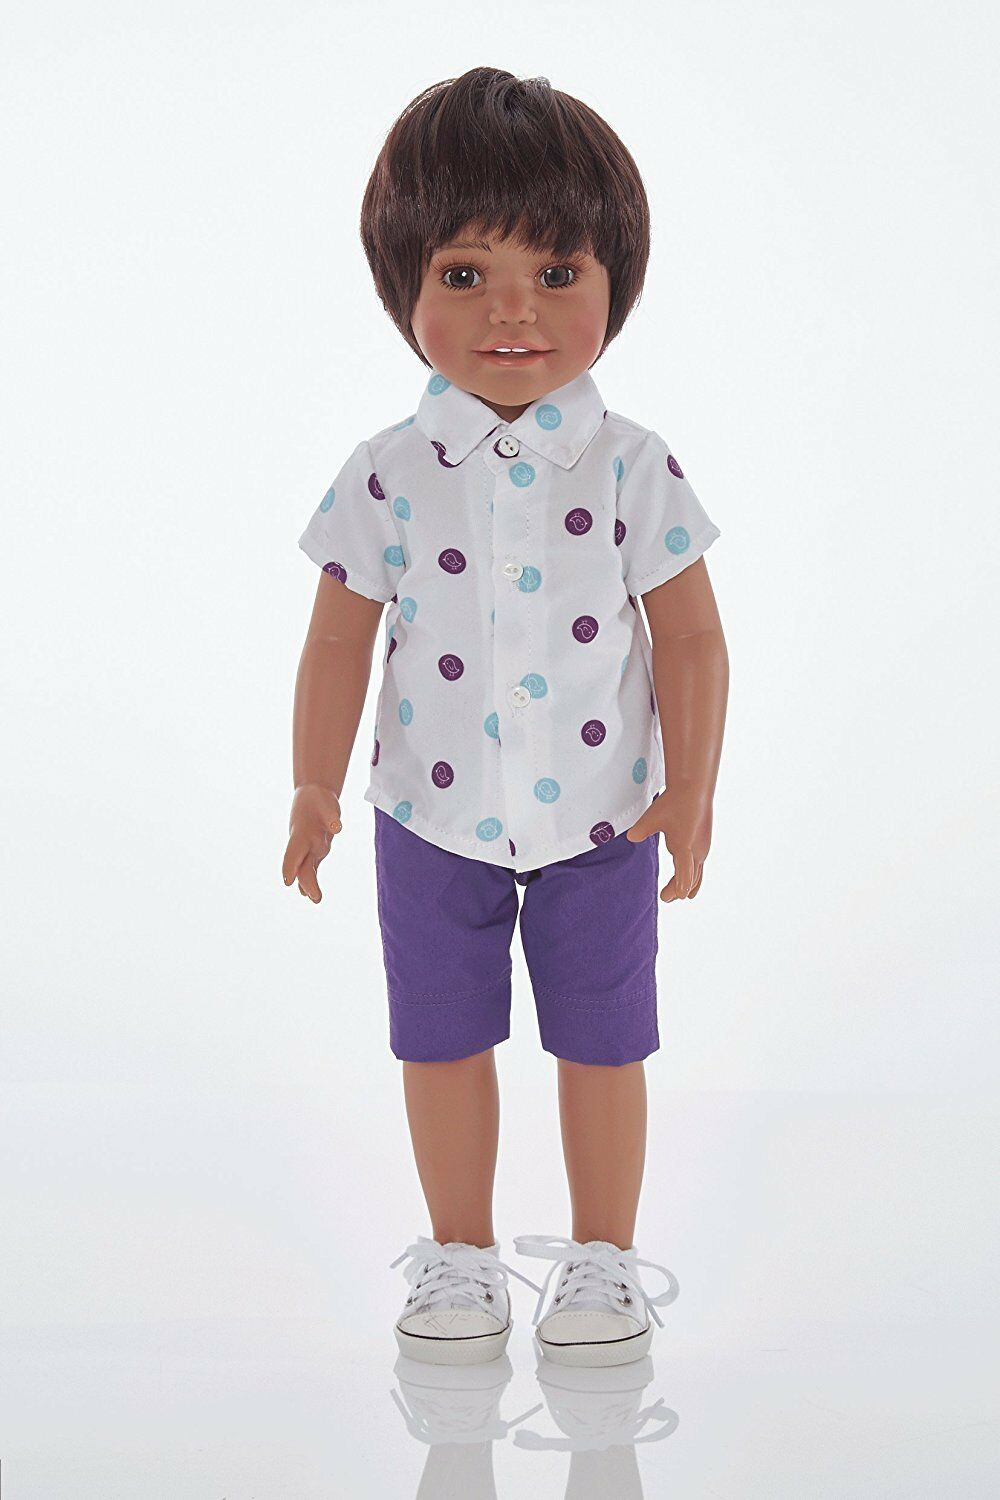 Boy Doll called Jay from All About The Doll medium skin tone 18 inch doll